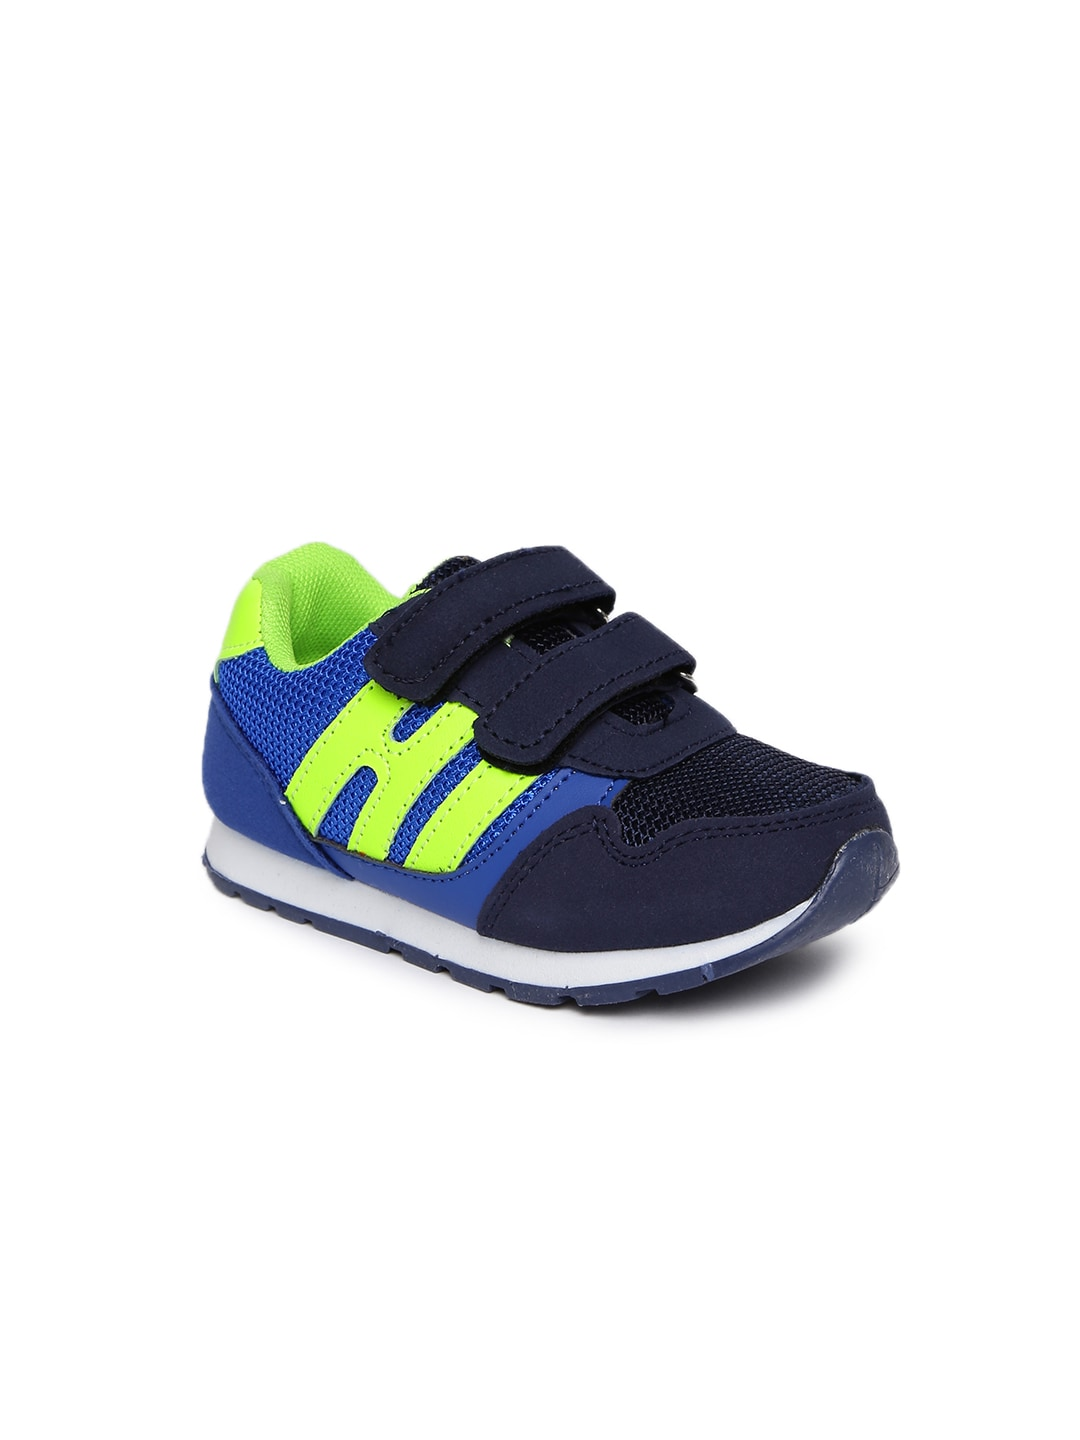 Sneakers Online - Buy Sneakers for Men   Women - Myntra 05aa7e84a